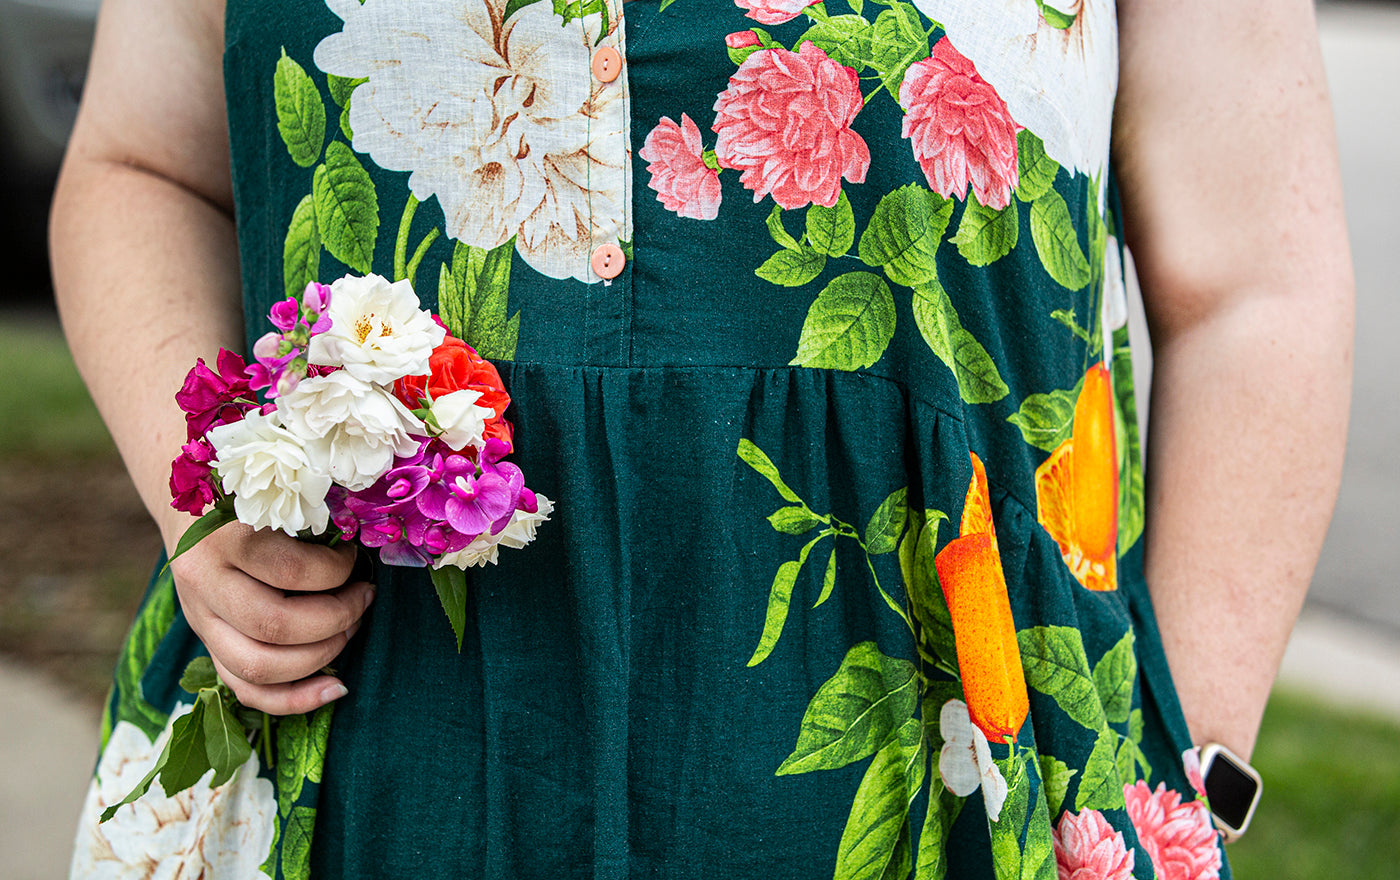 This is an up close image of the pleated waste of a dress covered in flowers. The woman wearing the dress has one hand in a pocket and is holding a bouquet of flowers in the other hand